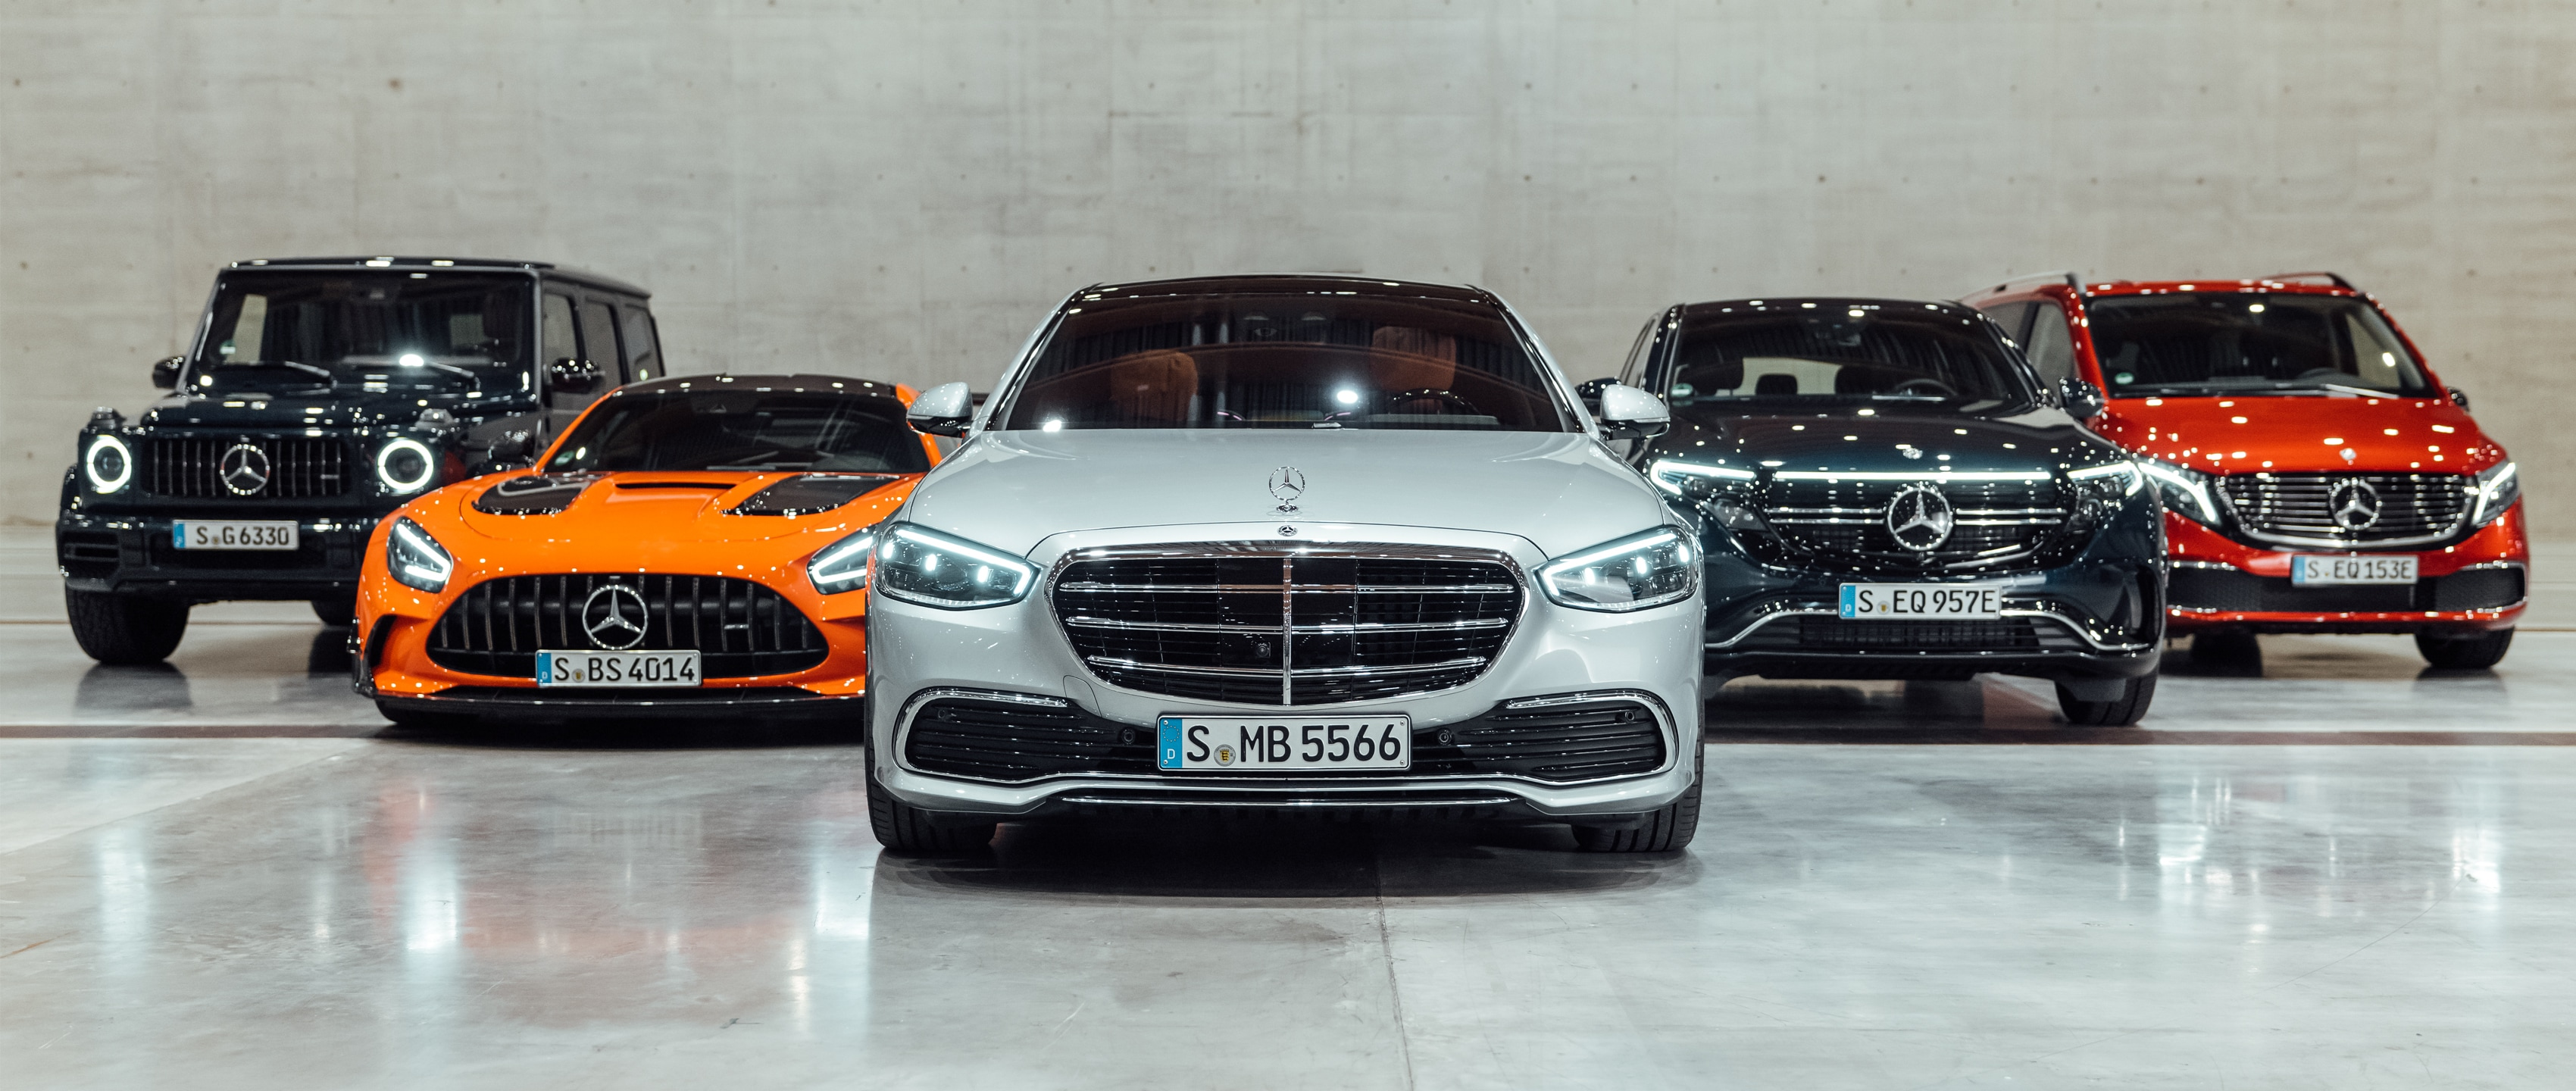 Mercedes Benz Fan Facts Sales Figures From 2020